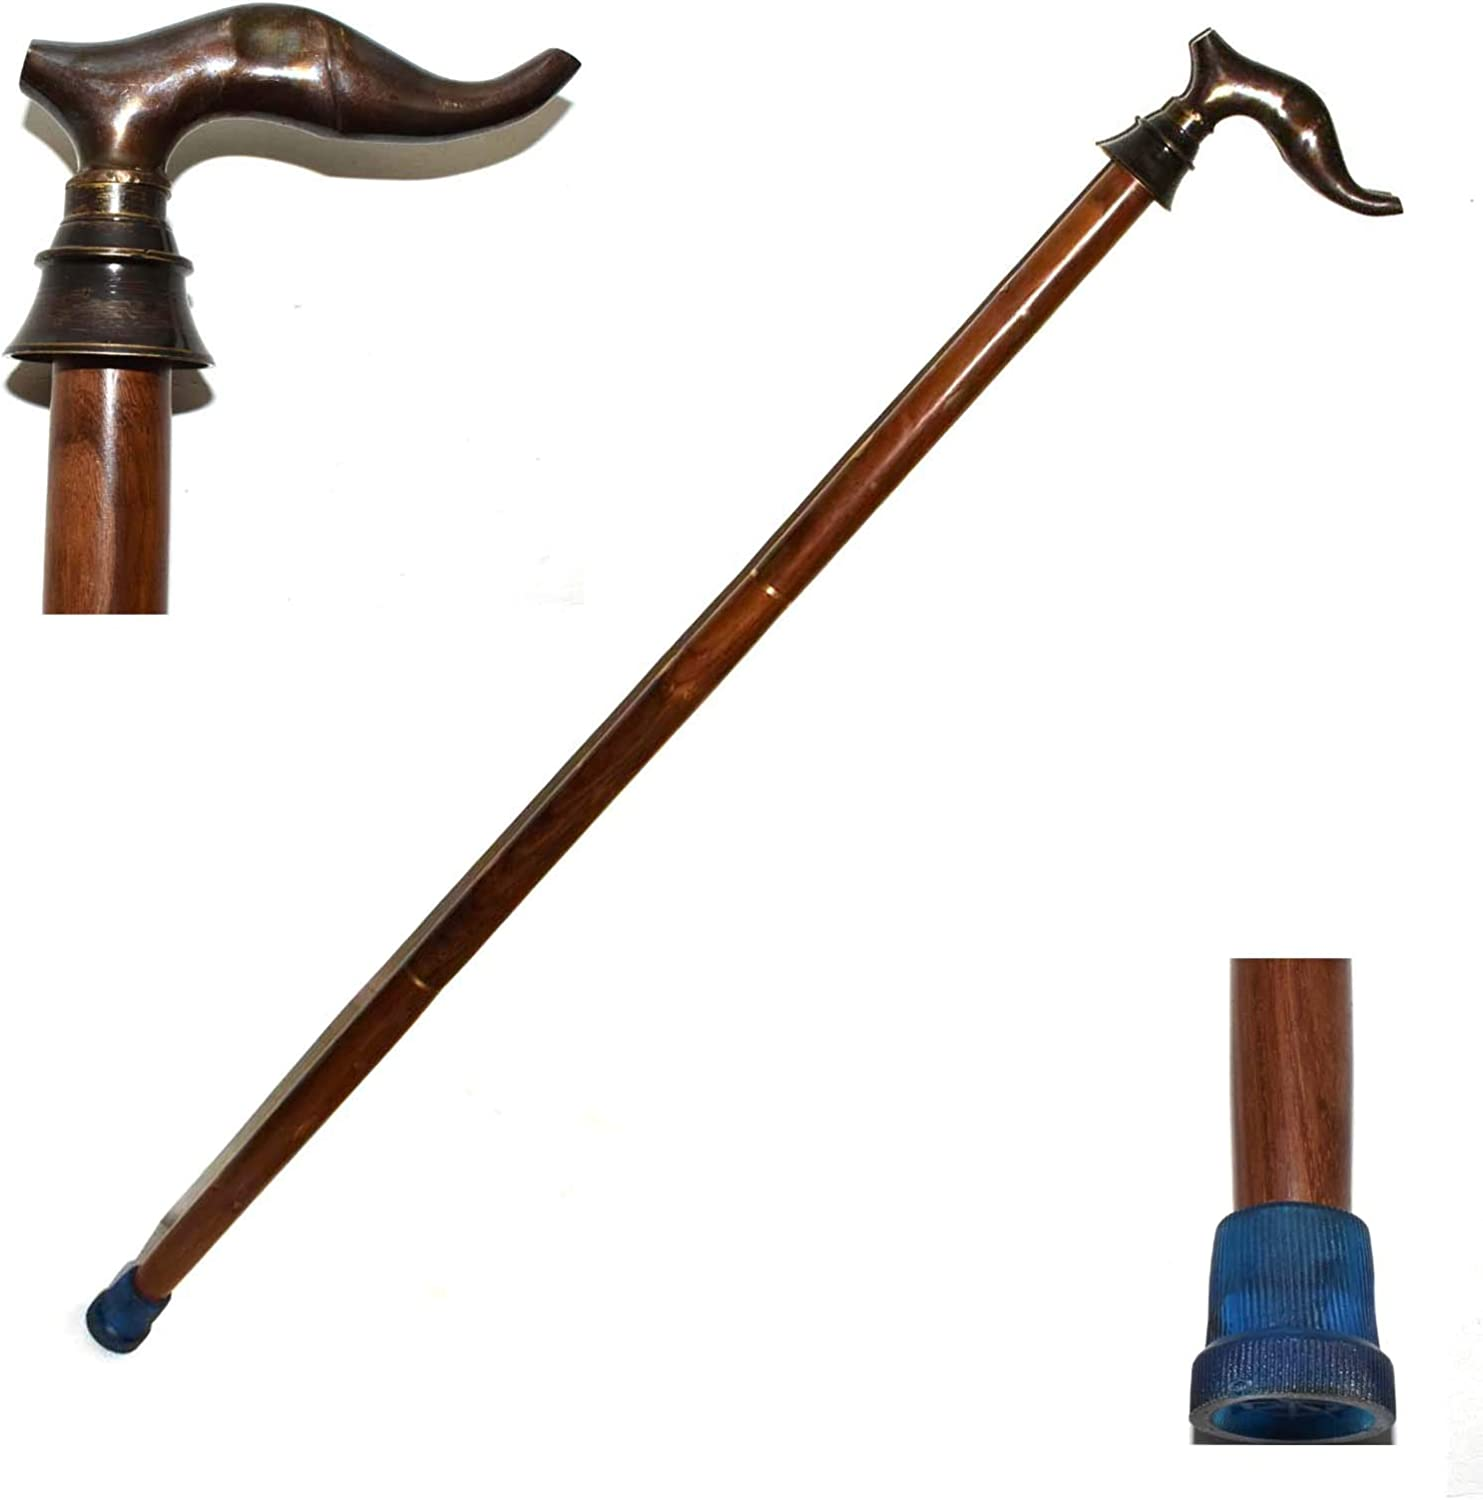 Max 86% OFF Handmade Wooden Folding Walking - lowest price Stick Handcrafted Cane